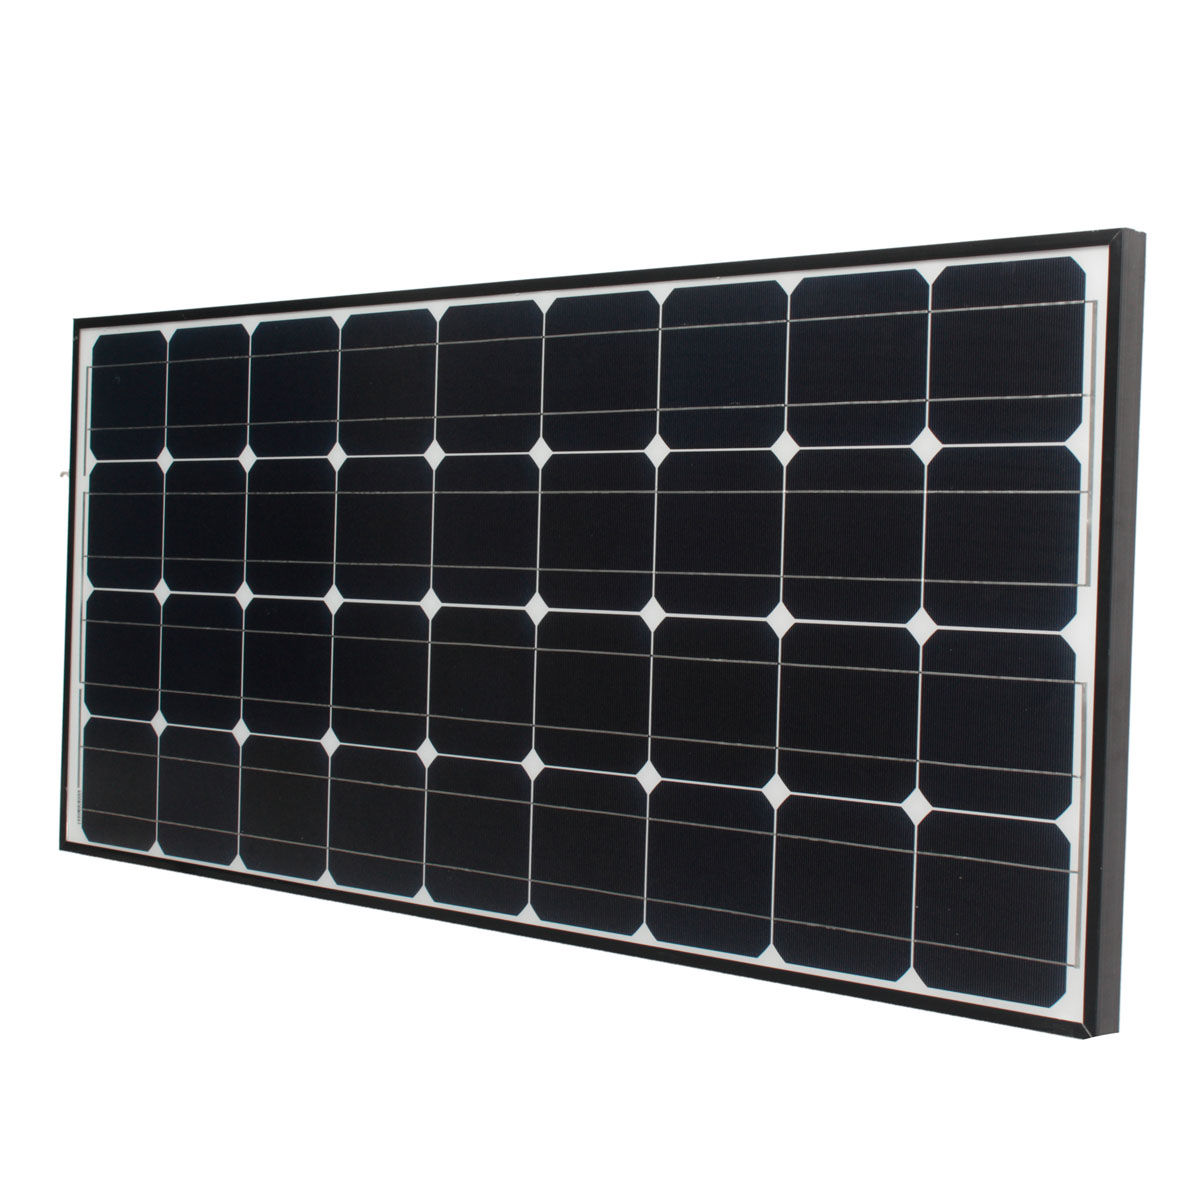 KINCO 18V 20W Monocrystalline Silicon Solar Panels With Silver/Black Frame High Conversion Efficiency DIy Solar Panel Battery 12v 50w monocrystalline silicon solar panel solar battery charger sunpower panel solar free shipping solar panels 12v